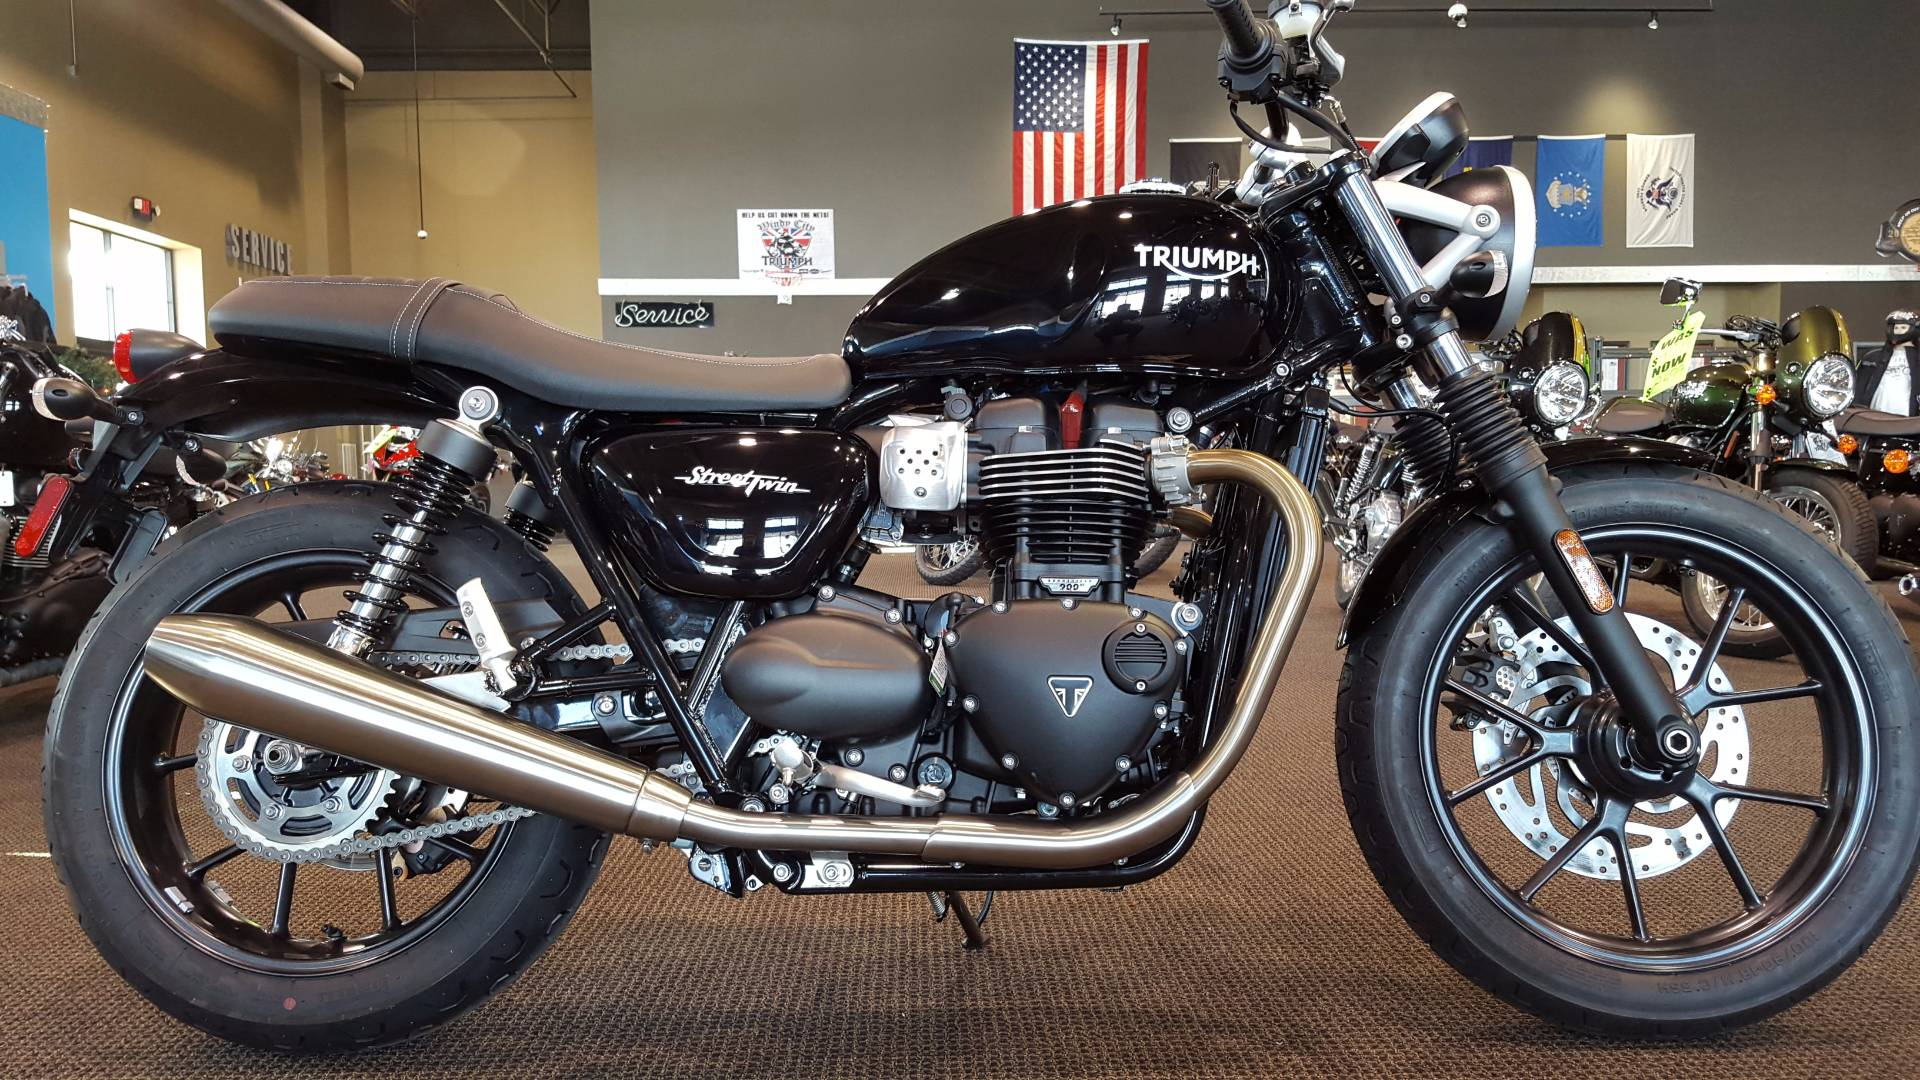 2017 triumph street twin black 2017 triumph road bike in saint charles il 4306518558 used. Black Bedroom Furniture Sets. Home Design Ideas